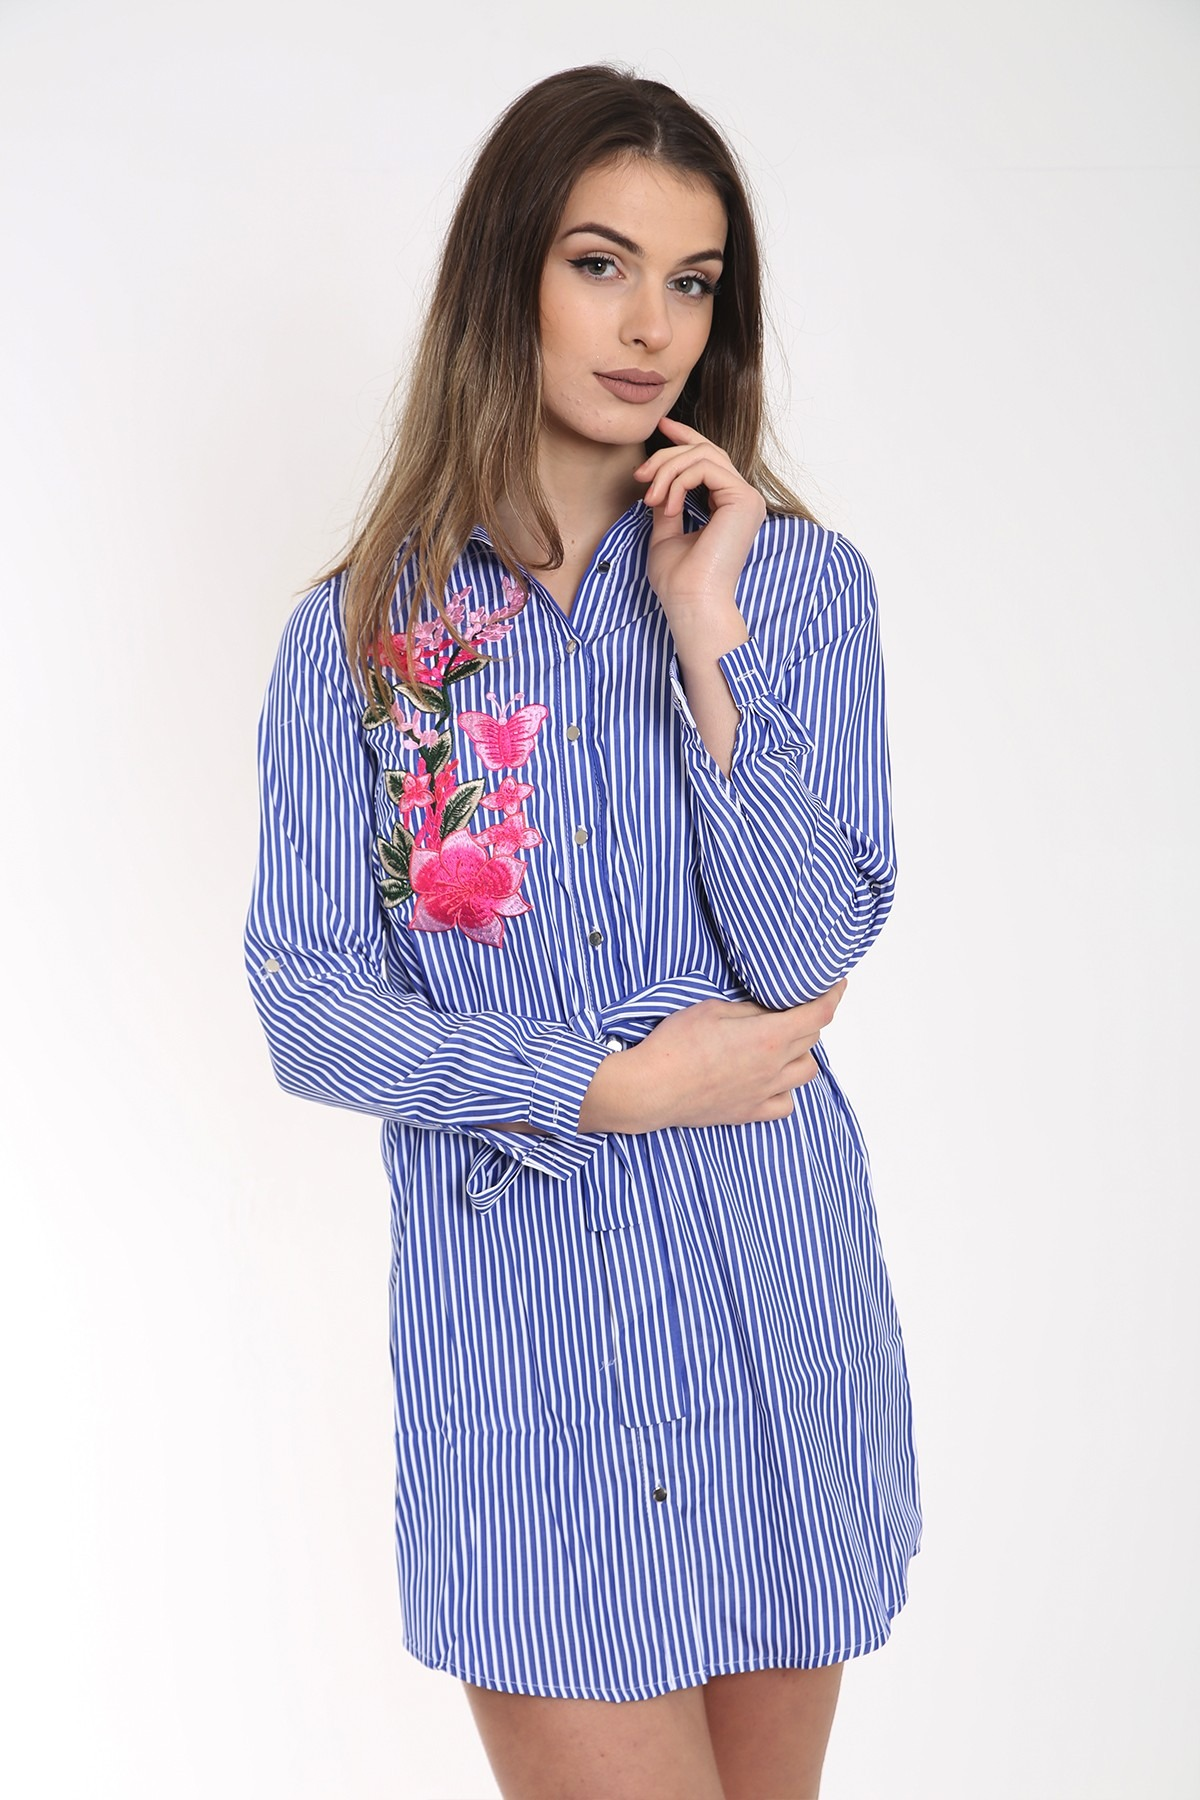 Butterfly Floral Embroidered Striped Shirt Dress